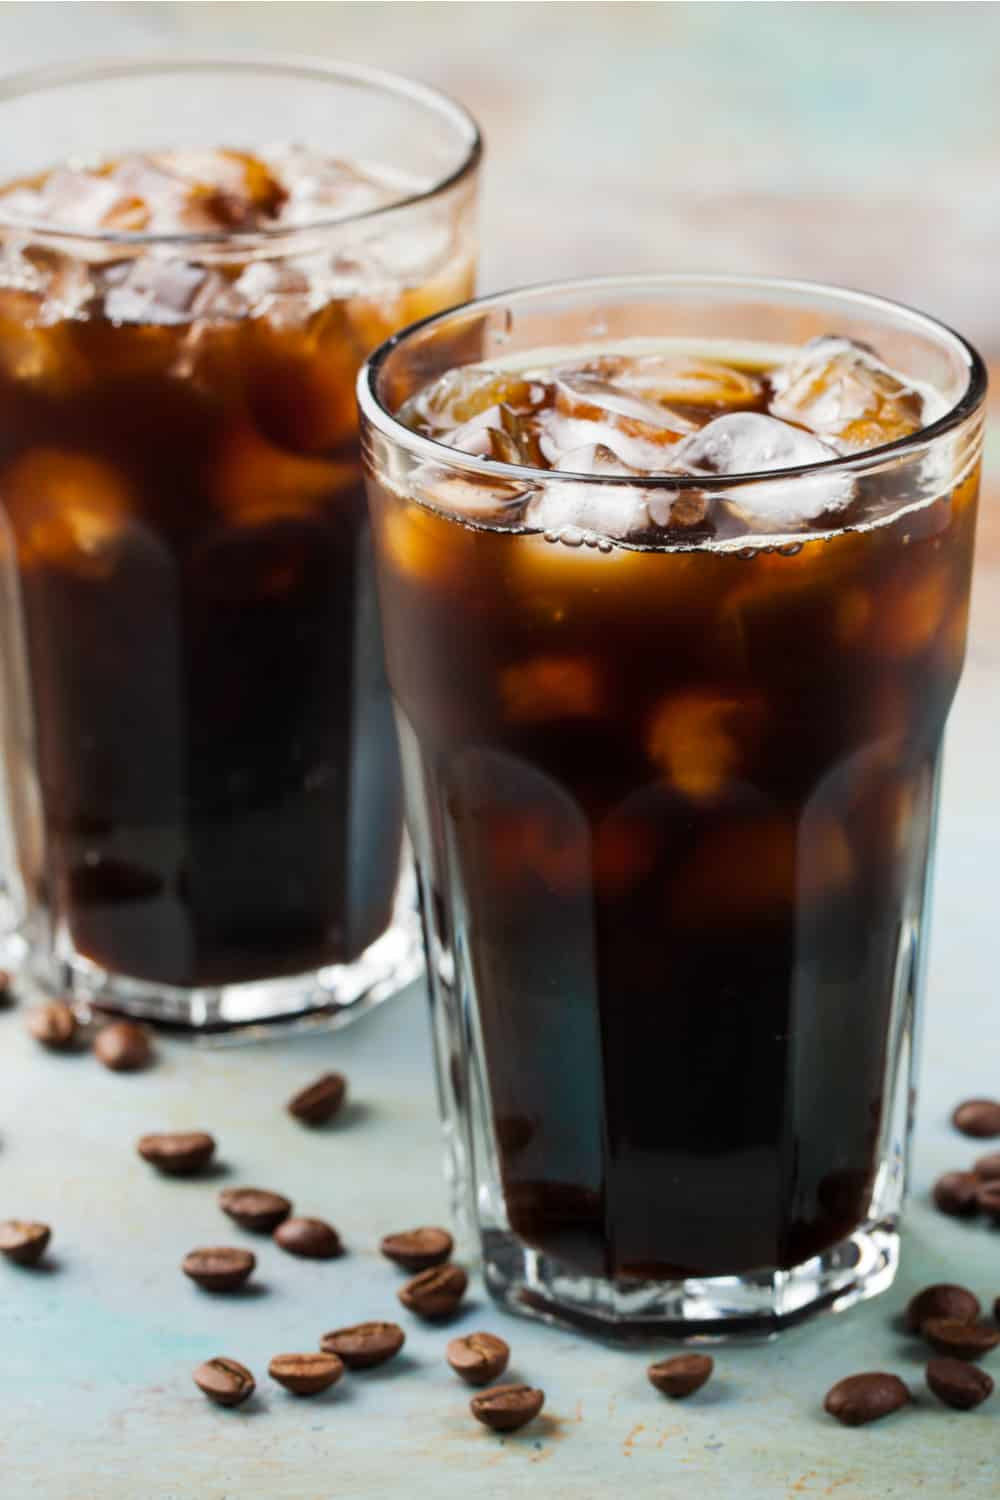 Use up your stale beans to make cold-brew iced coffee